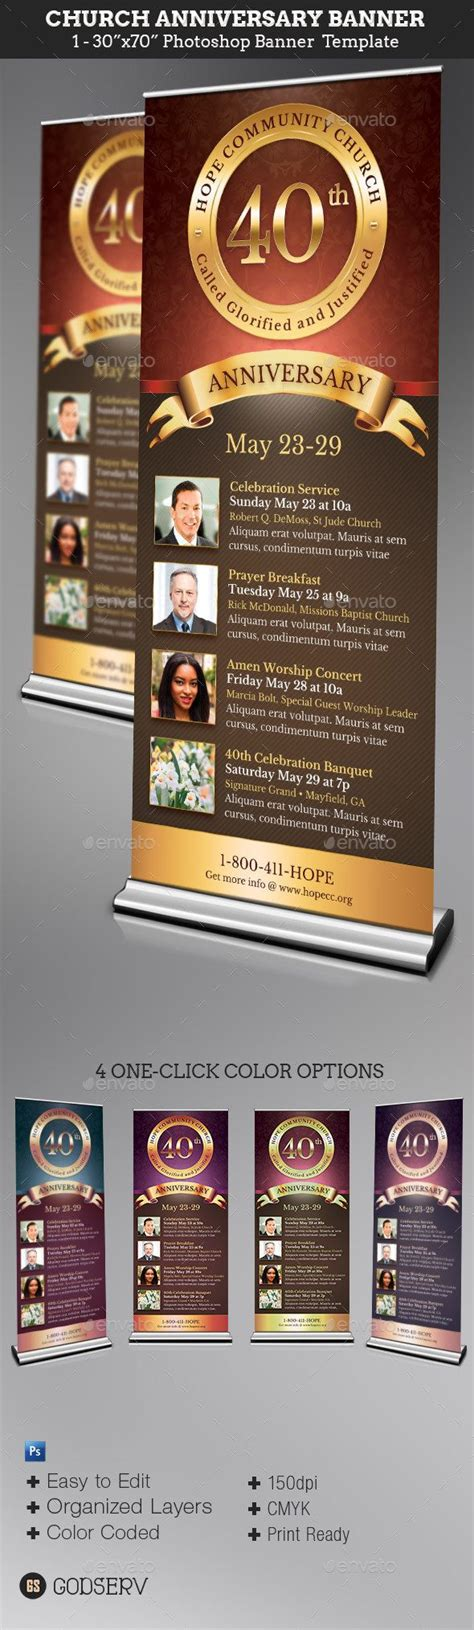 Church Banner Design Templates 17 Best Images About Anniversary Display On Pinterest Behance Timeline And Vinyl Banners